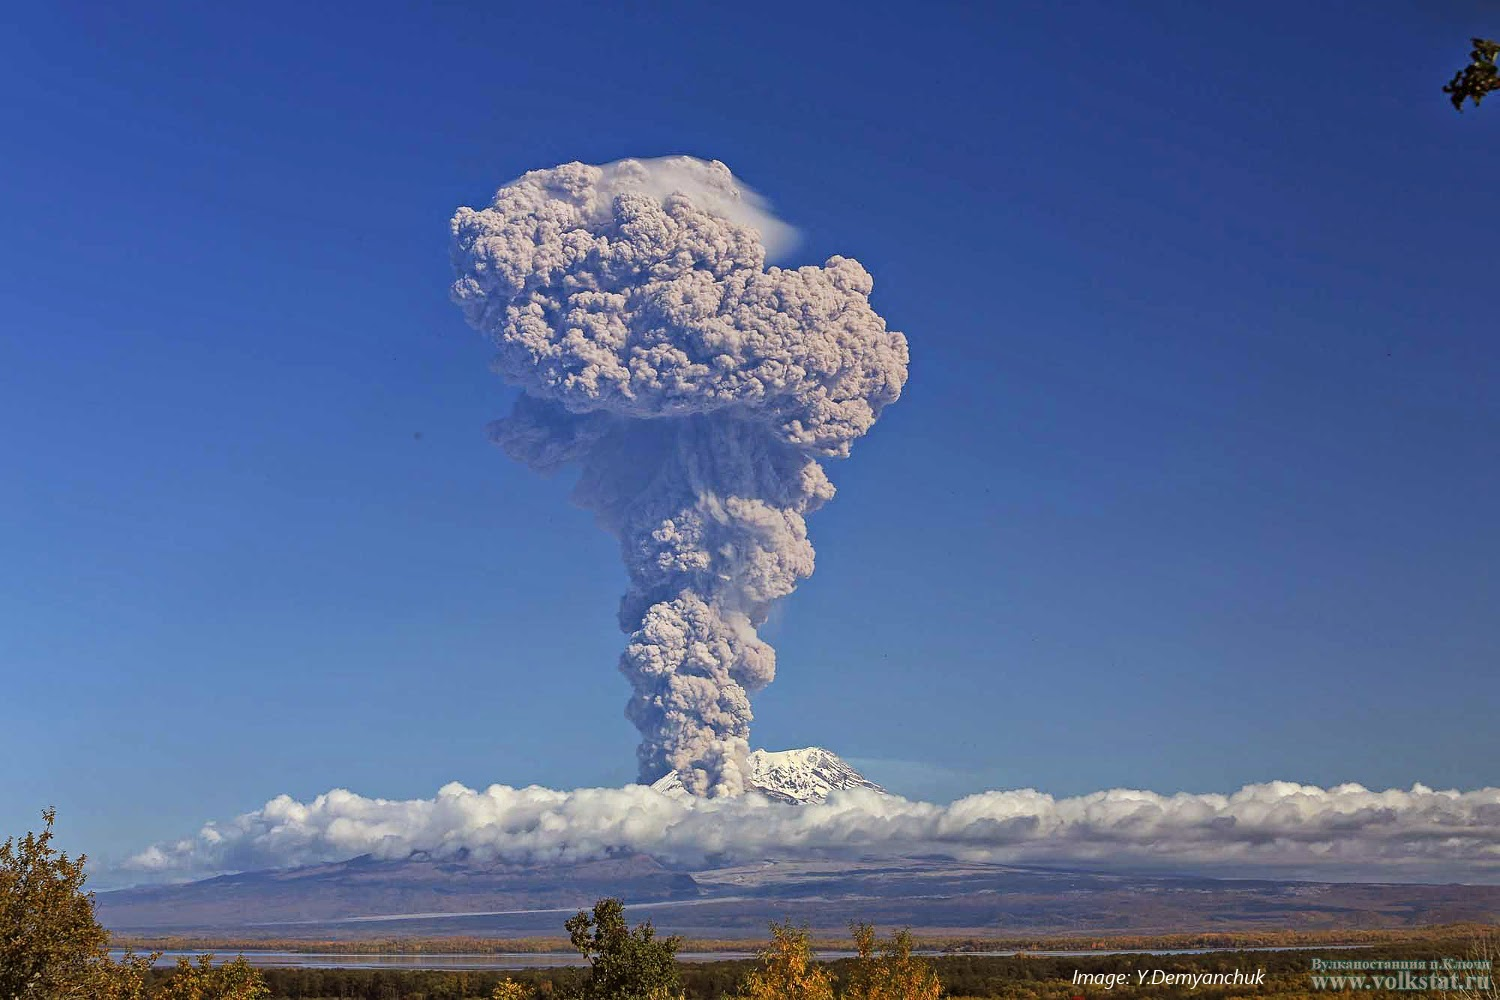 Eruption plume from Shiveluch's explosion on 24 Sep (photo: Y. Demyanchuk/Volkstat.ru)